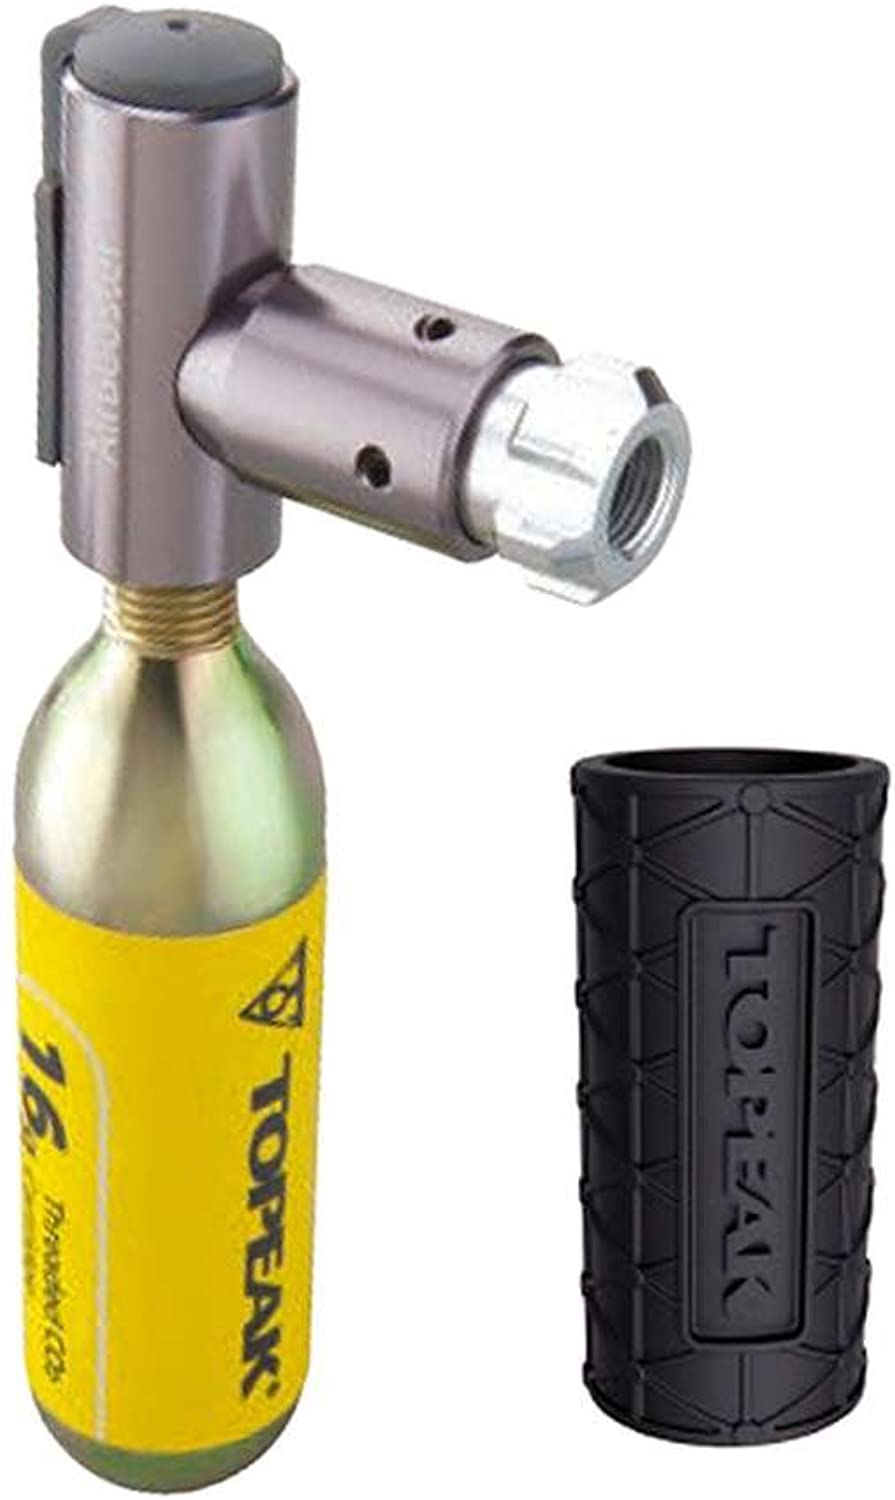 Topeak Air Booster CO2 Inflator Head with 1 Piece 16 g CO2 Cartridge & Predective Sleeve